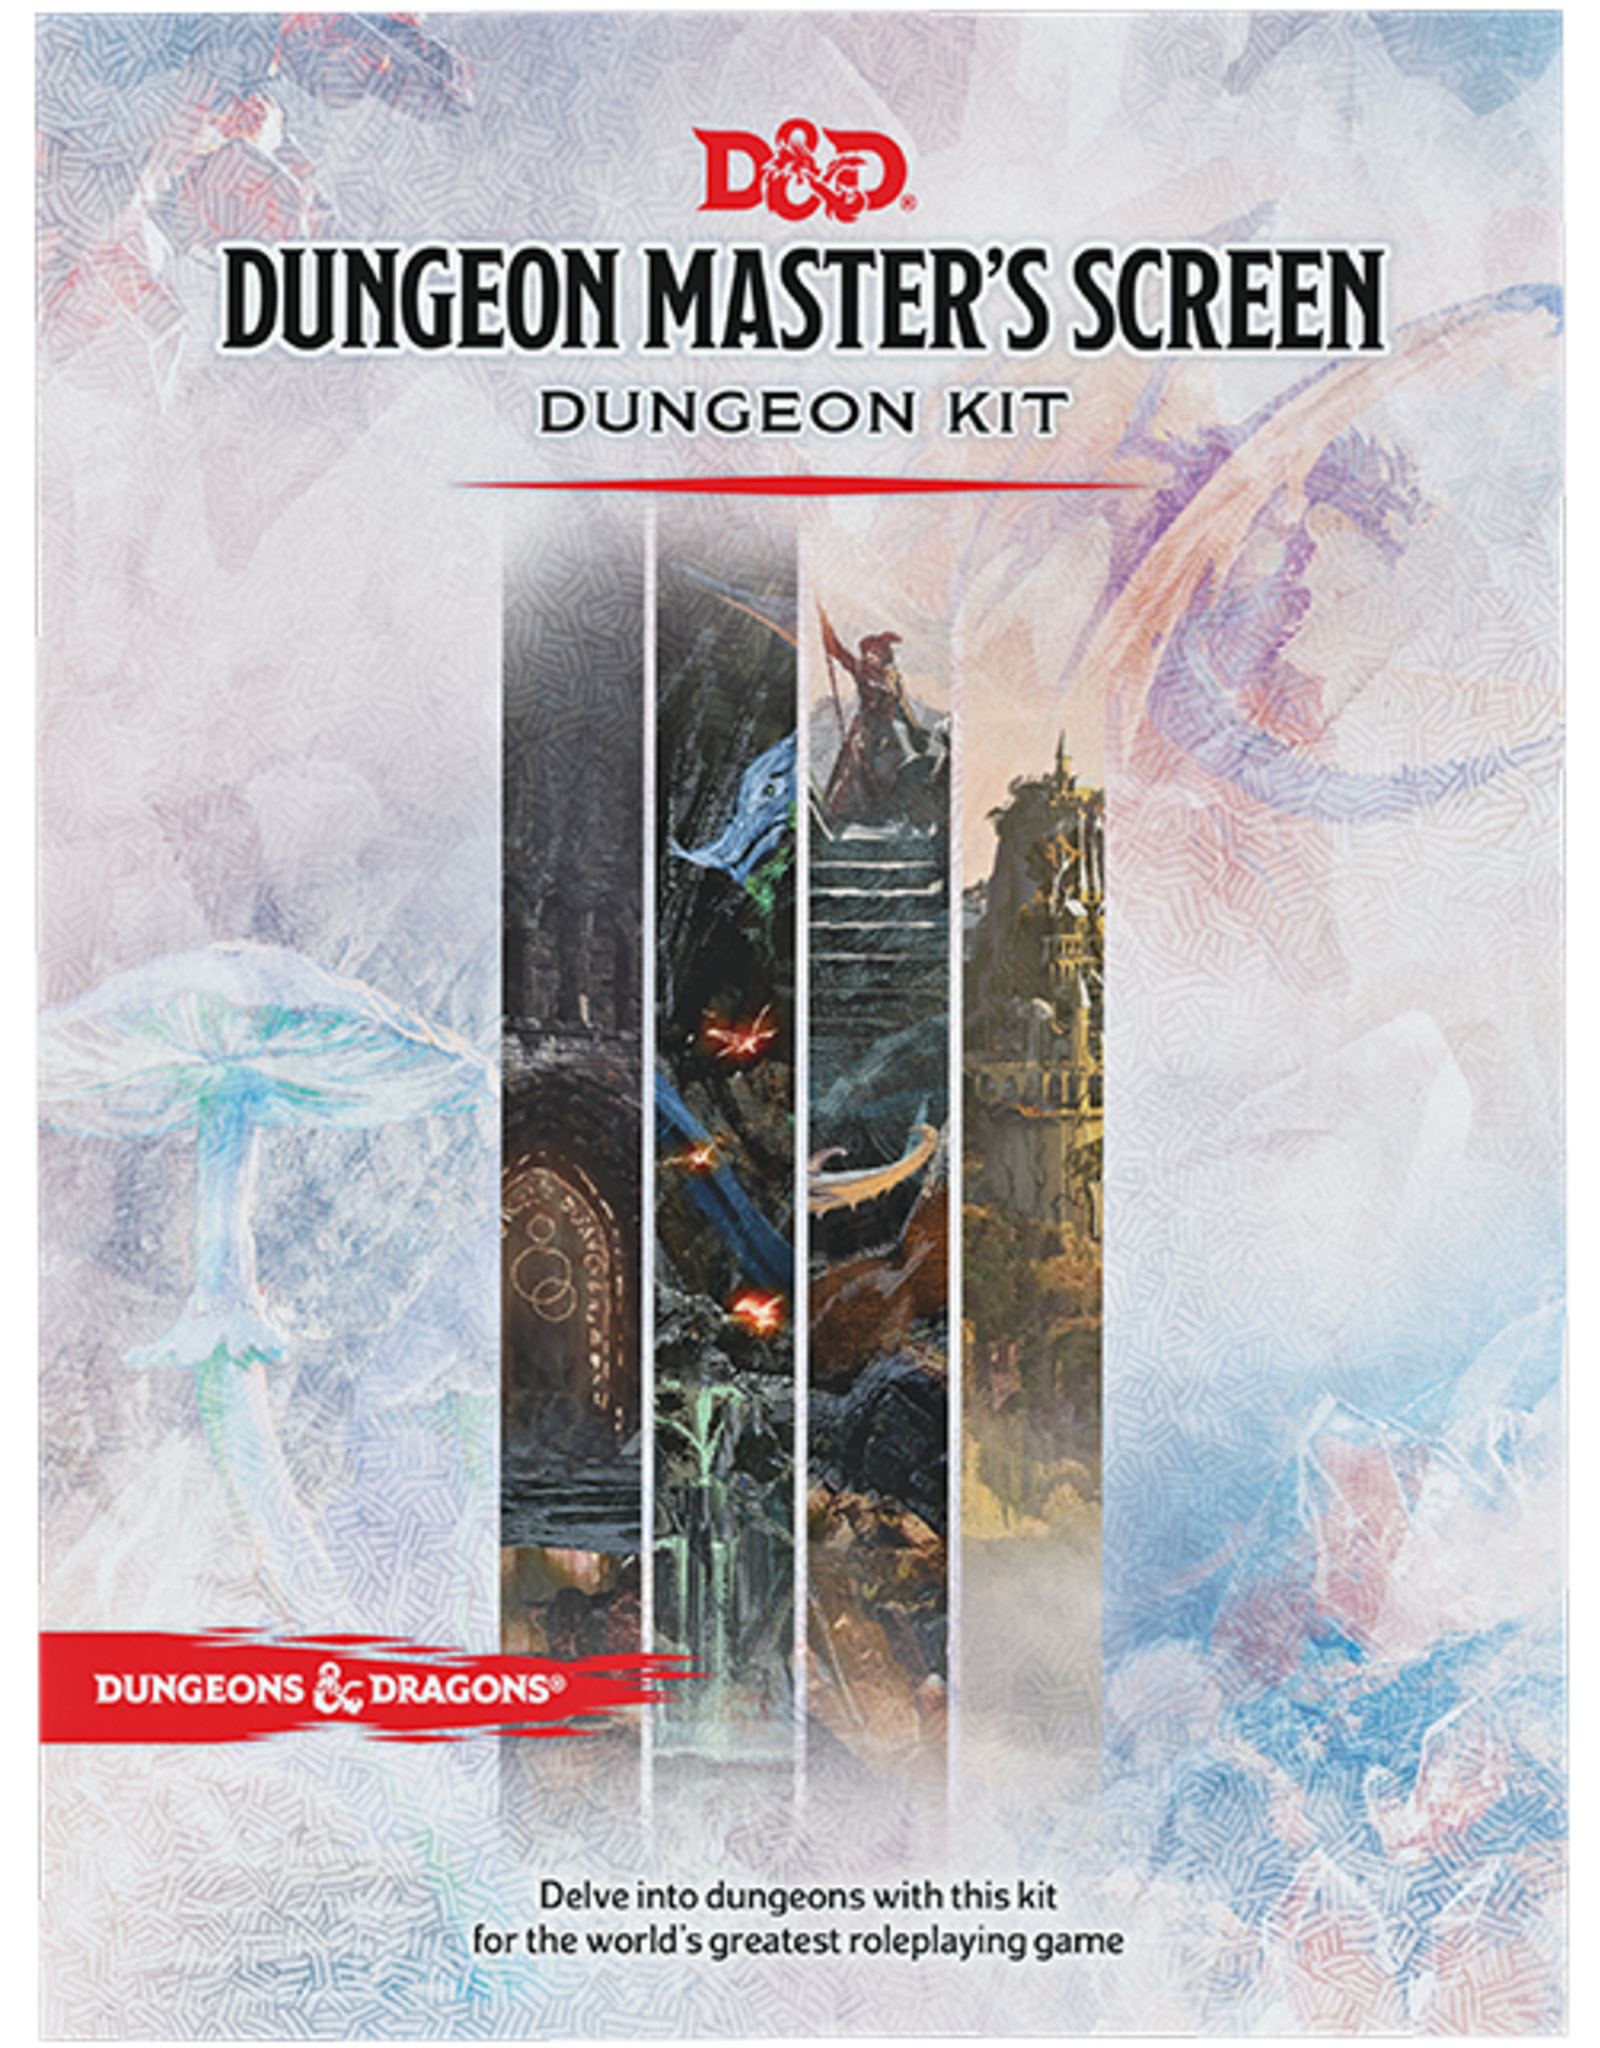 Wizards of the Coast D&D 5e DM Screen Dungeon Kit